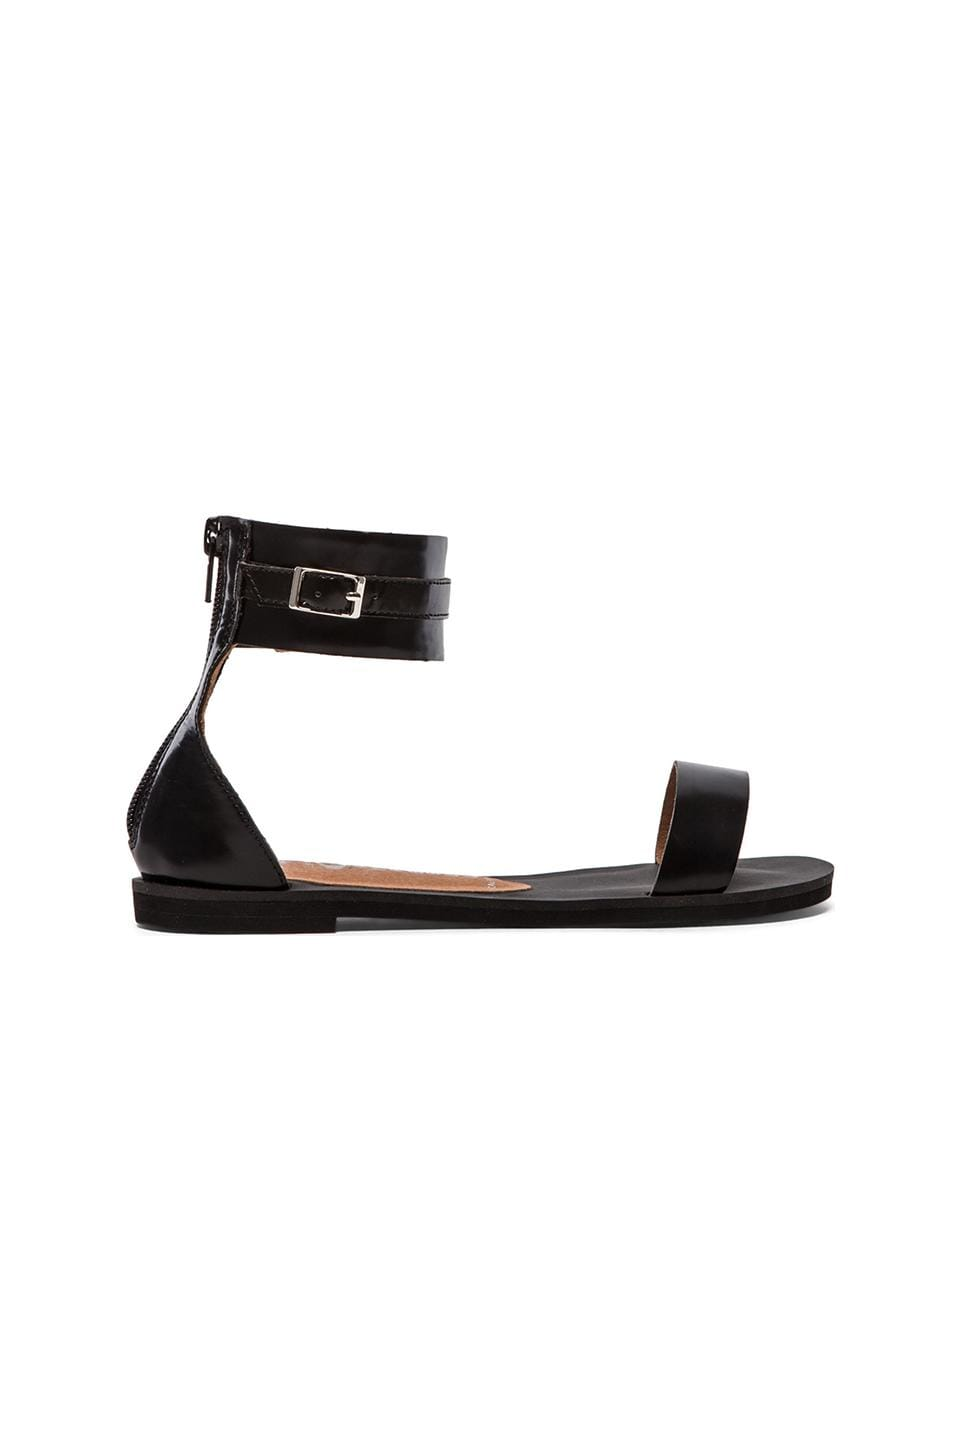 Jeffrey Campbell Islip Sandal in Black Box & Black